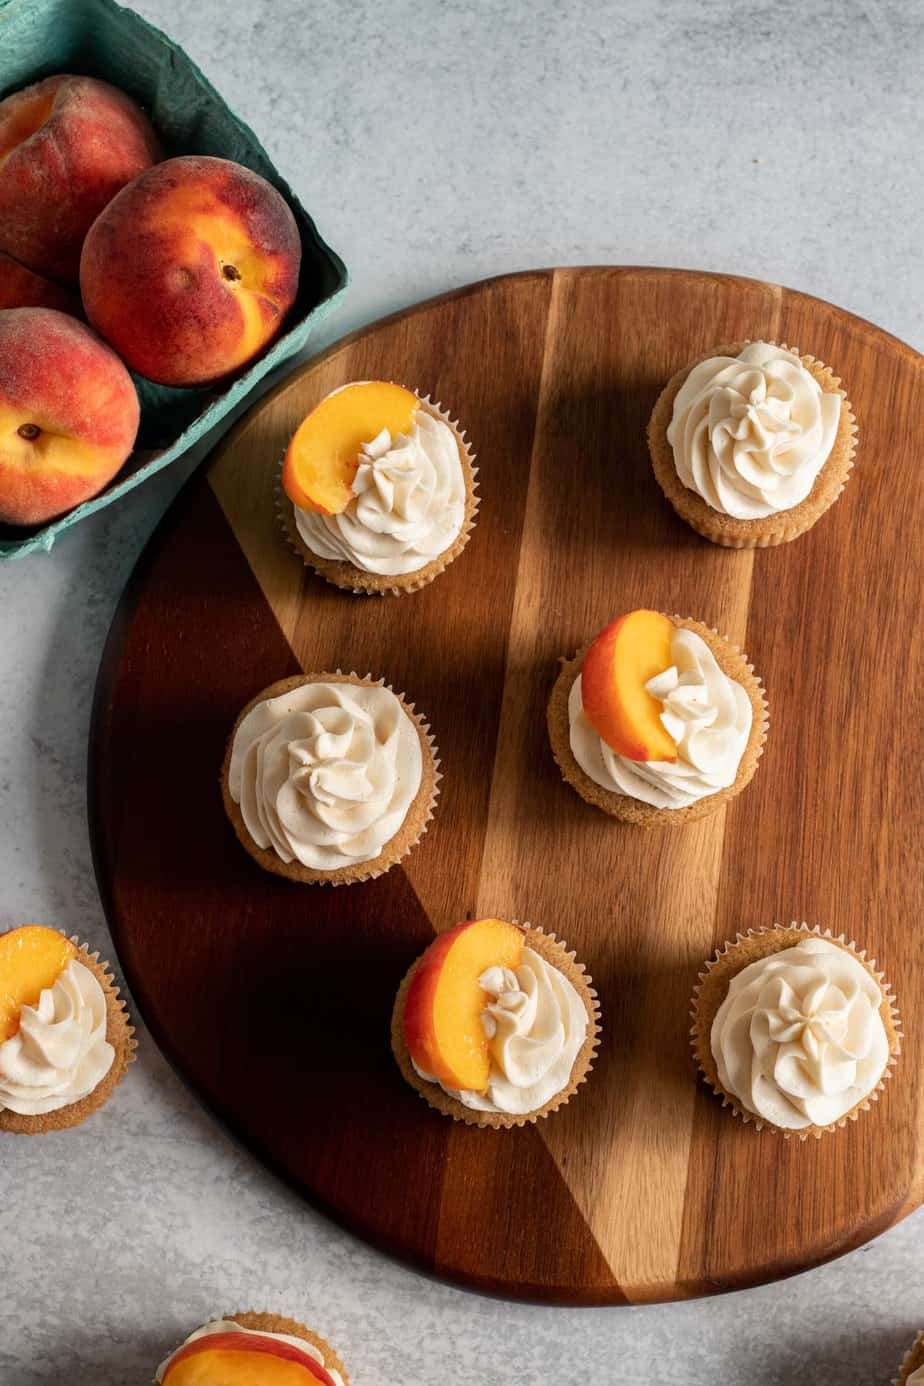 overhead view of cupcakes with vanilla frosting and peach slices on top on a wooden board